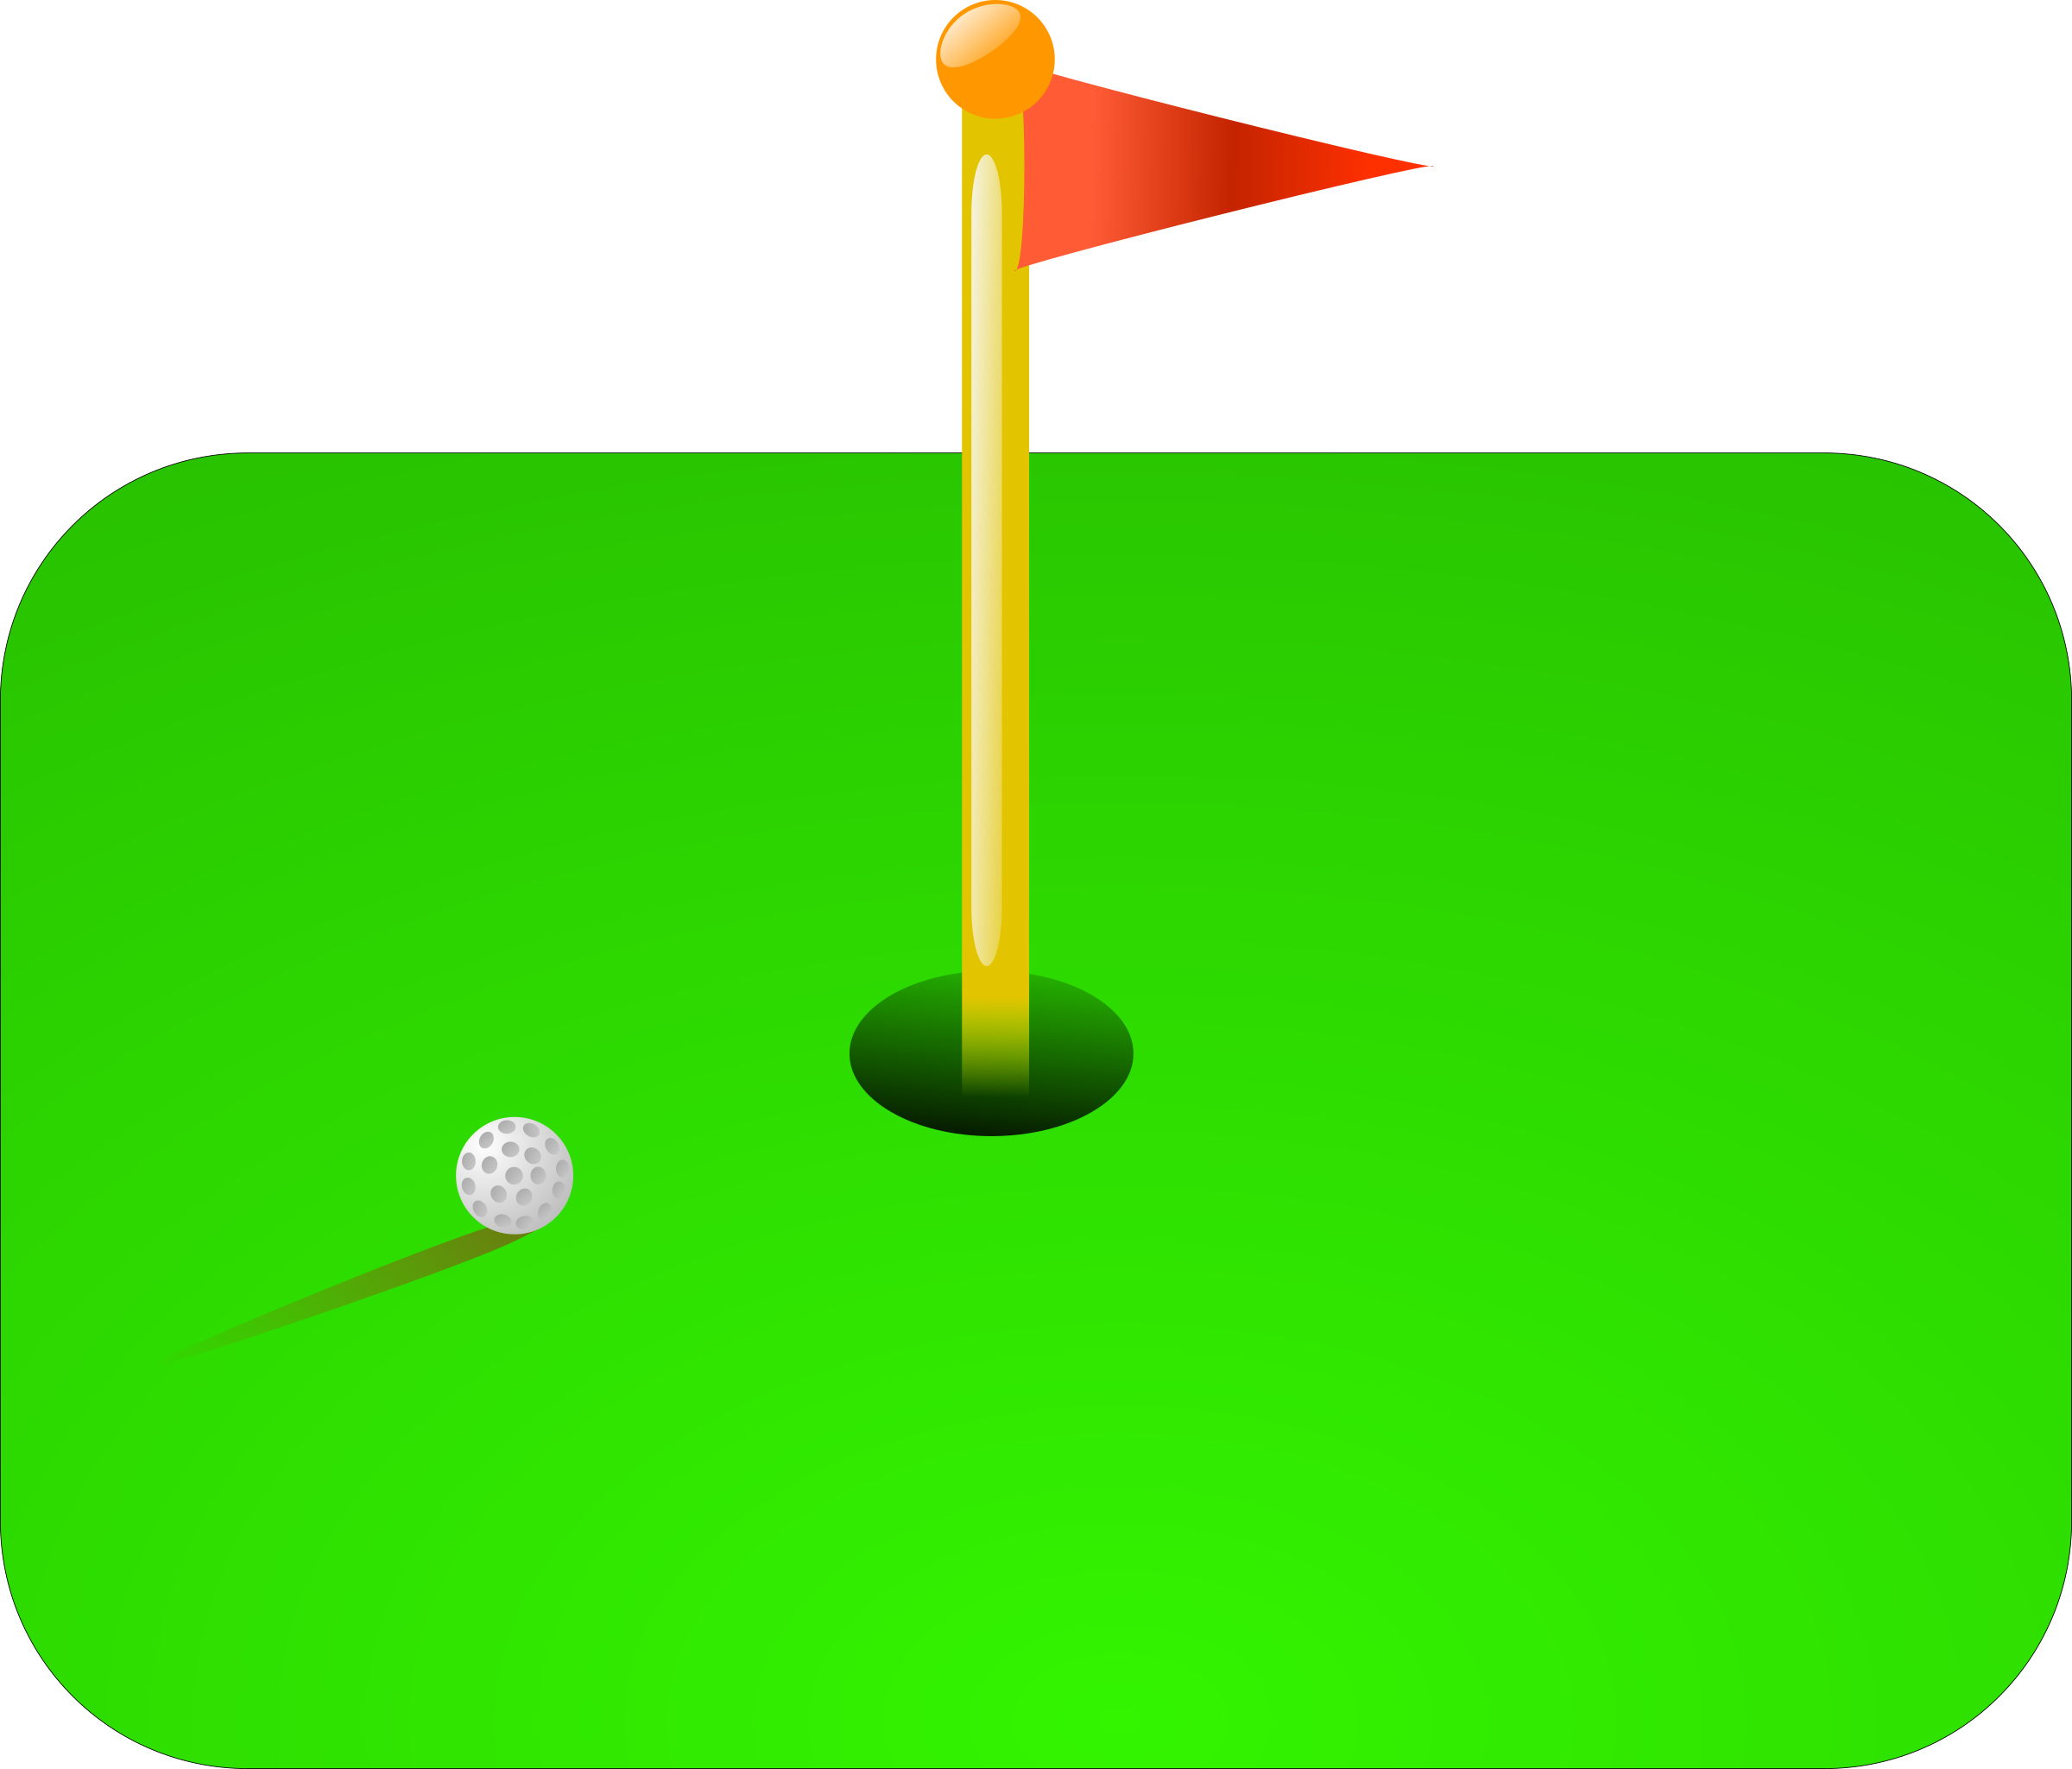 club vector golf ball